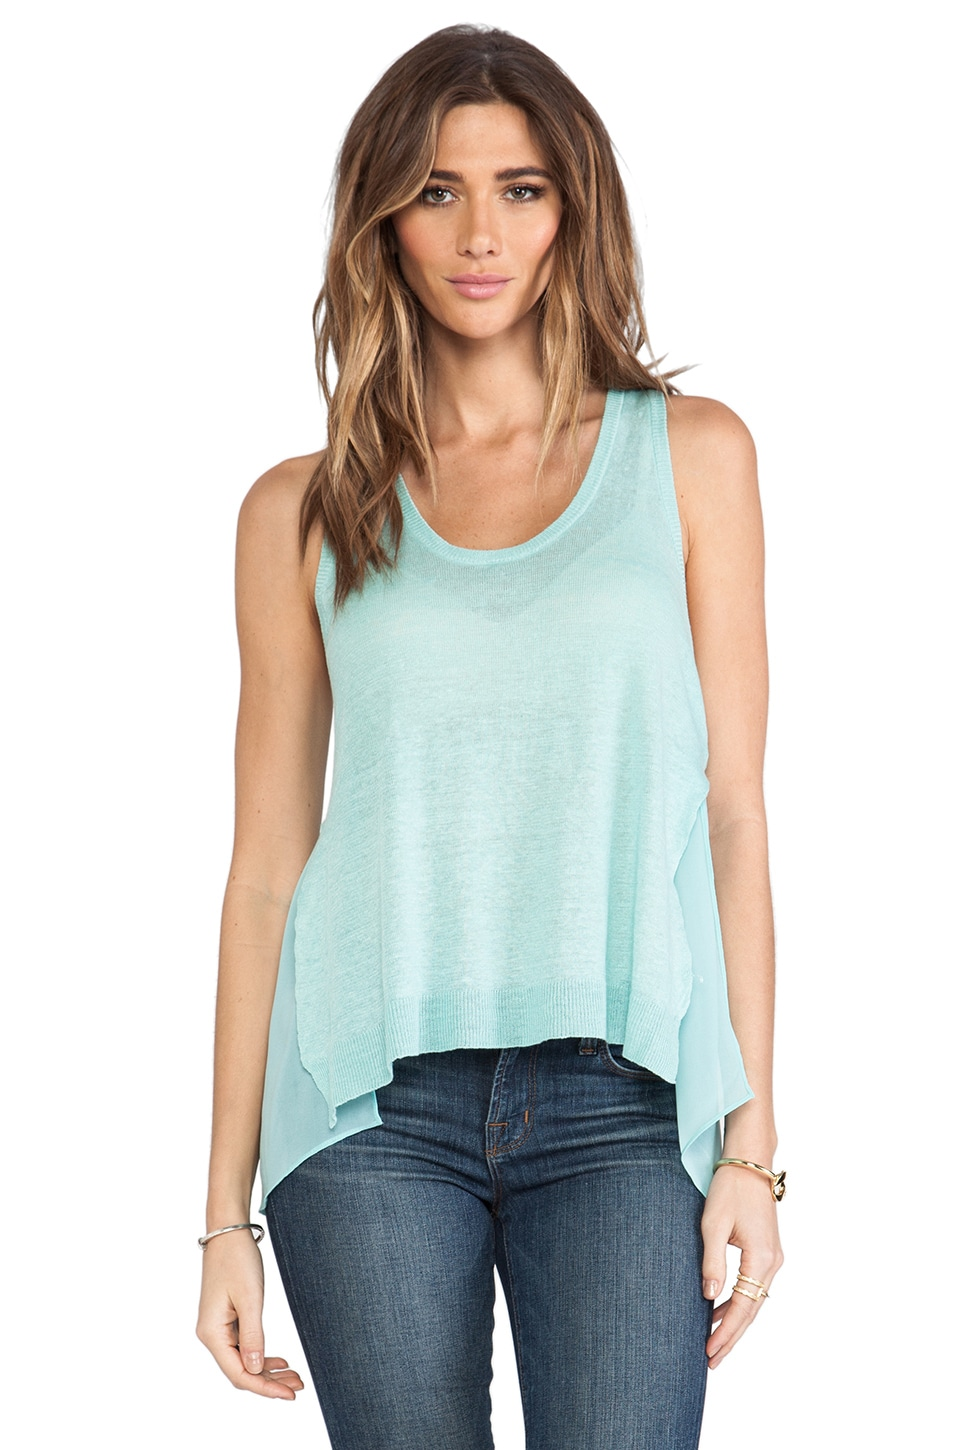 Central Park West St. Petersburg Sheer Panel Tank in Seafoam